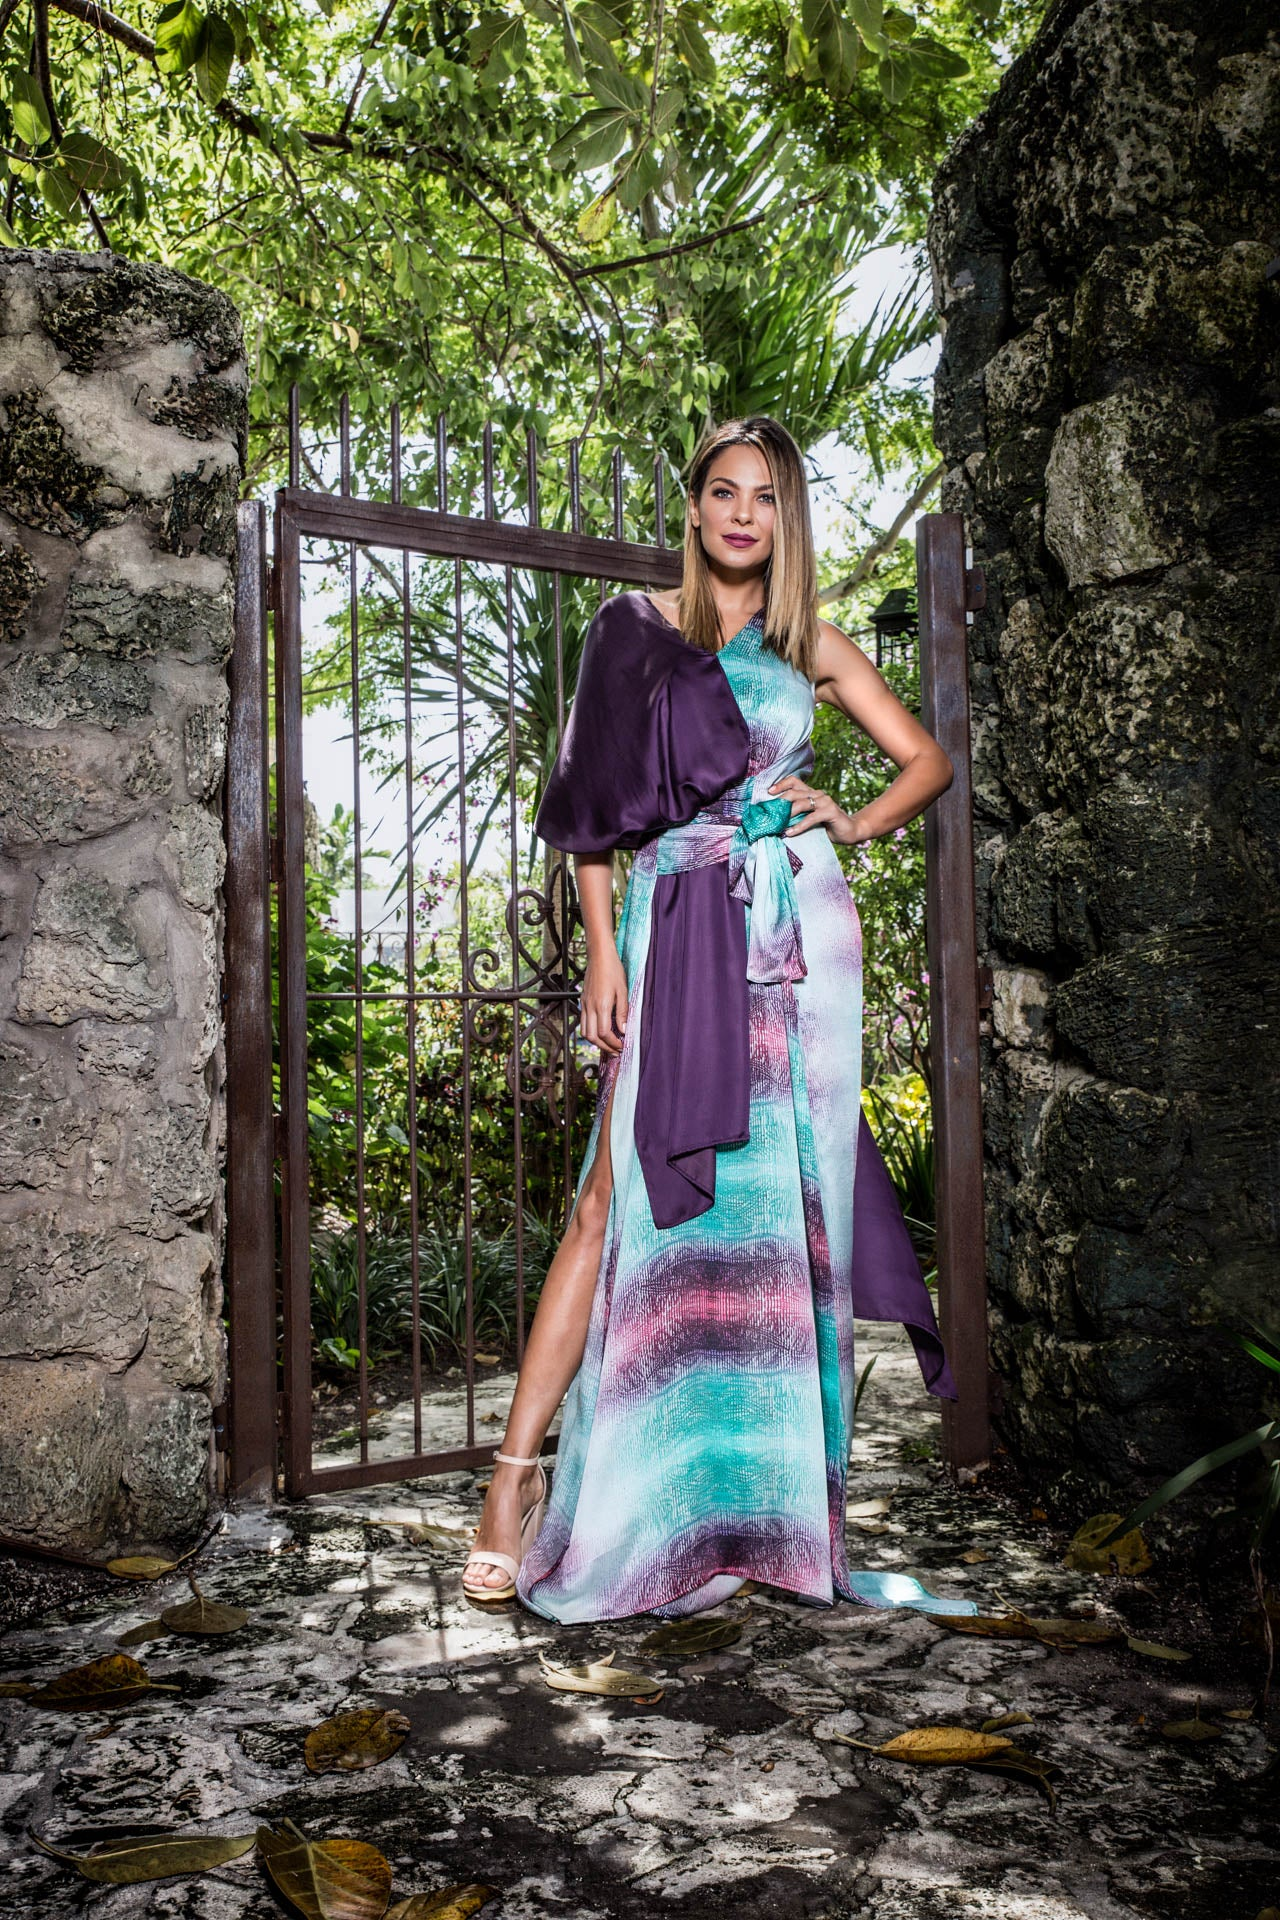 Scope Kaftan - Turquoise Violet Print Dresses - artTECA